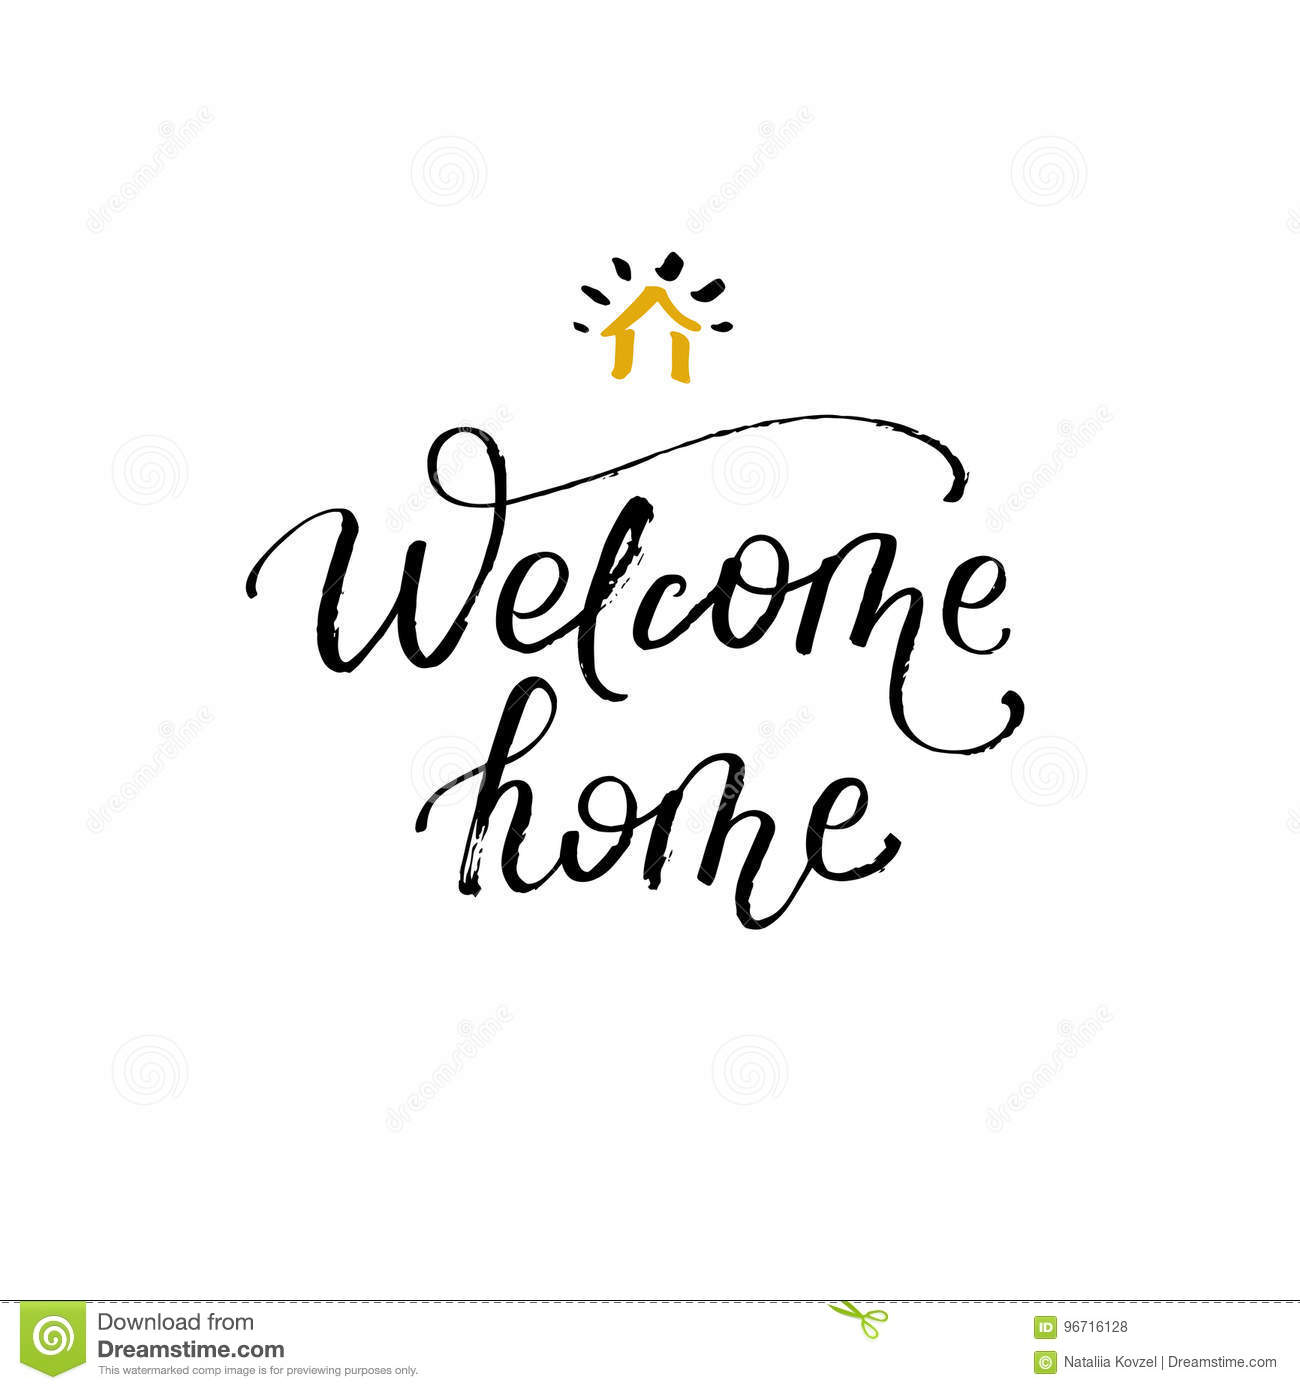 Welcome home greeting card with calligraphy hand drawn design welcome home greeting card with calligraphy hand drawn design element m4hsunfo